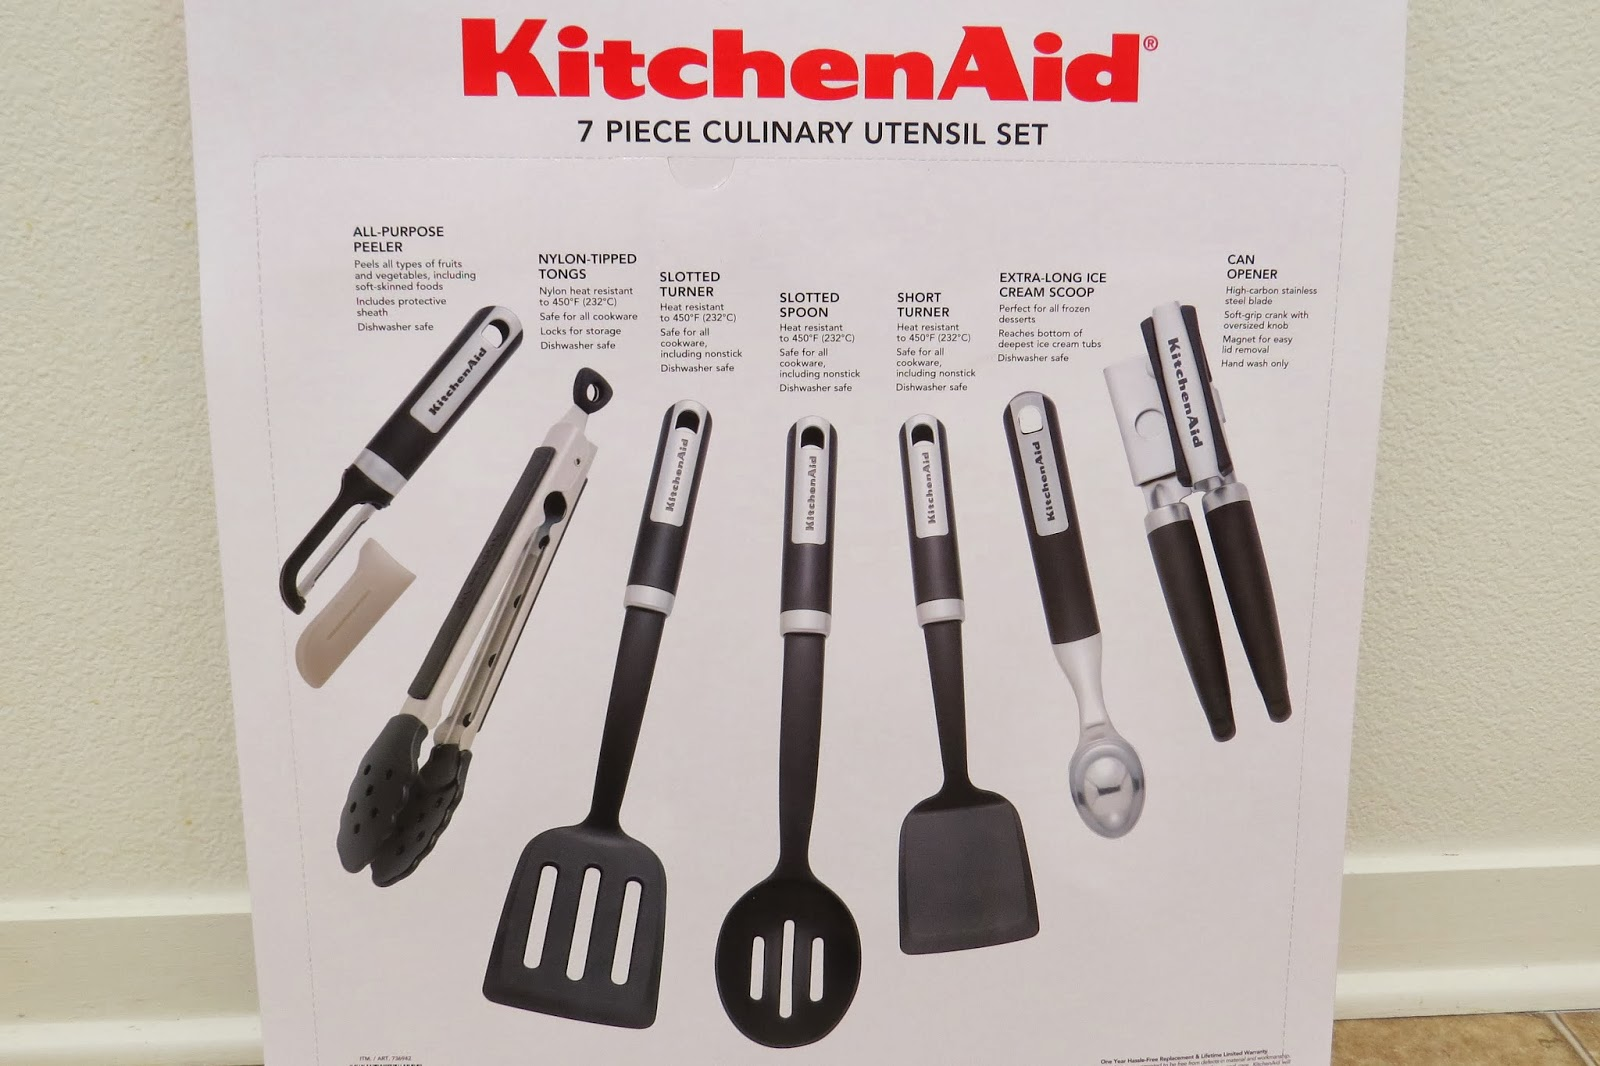 Costco Haul - KitchenAid | It has grown on me!